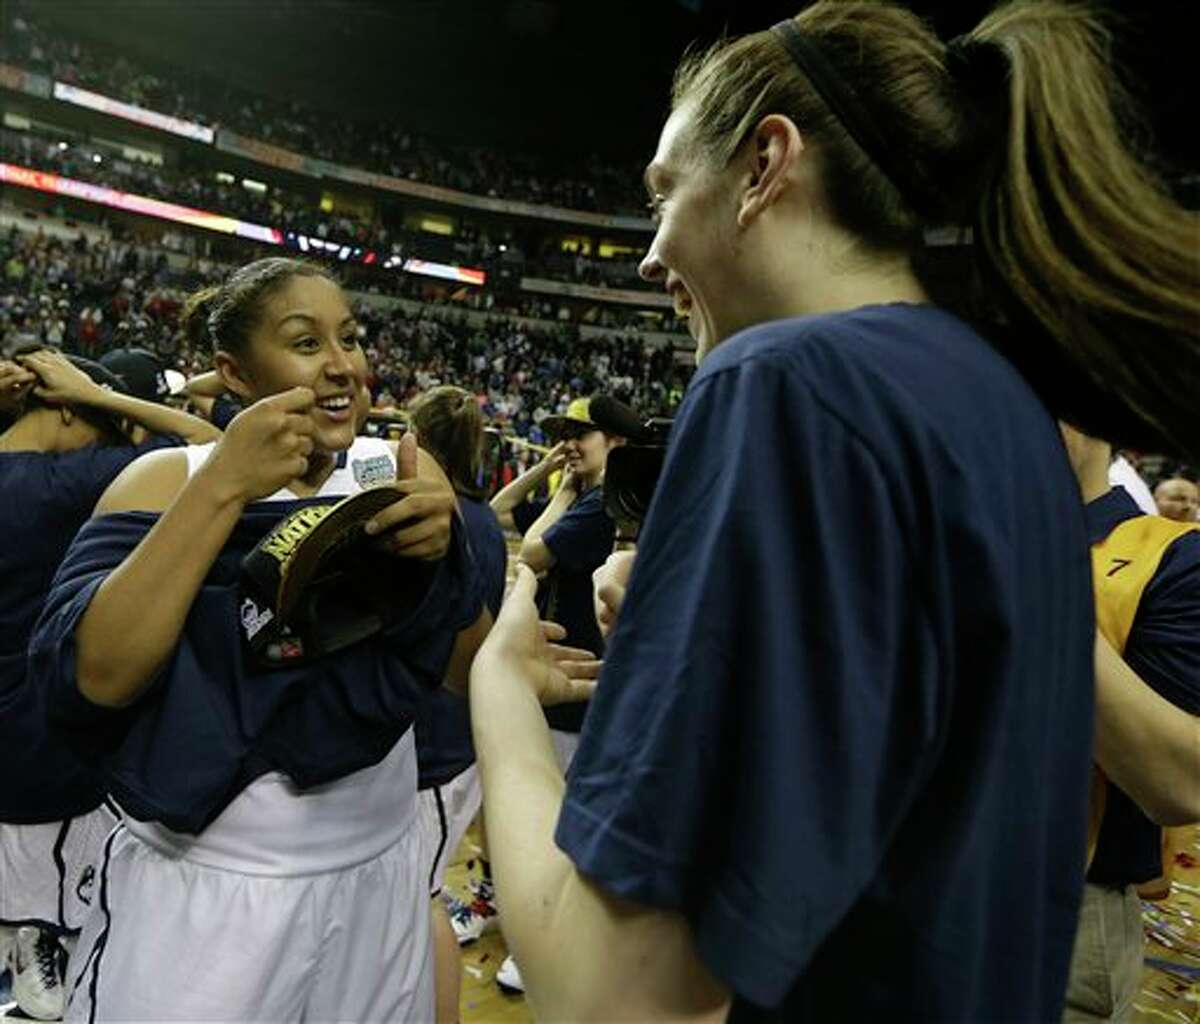 Connecticut forward Kaleena Mosqueda-Lewis (23) Connecticut forward Breanna Stewart (30) after the second half of the championship game in the Final Four of the NCAA women's college basketball tournament, Tuesday, April 8, 2014, in Nashville, Tenn. (AP Photo/Mark Humphrey)